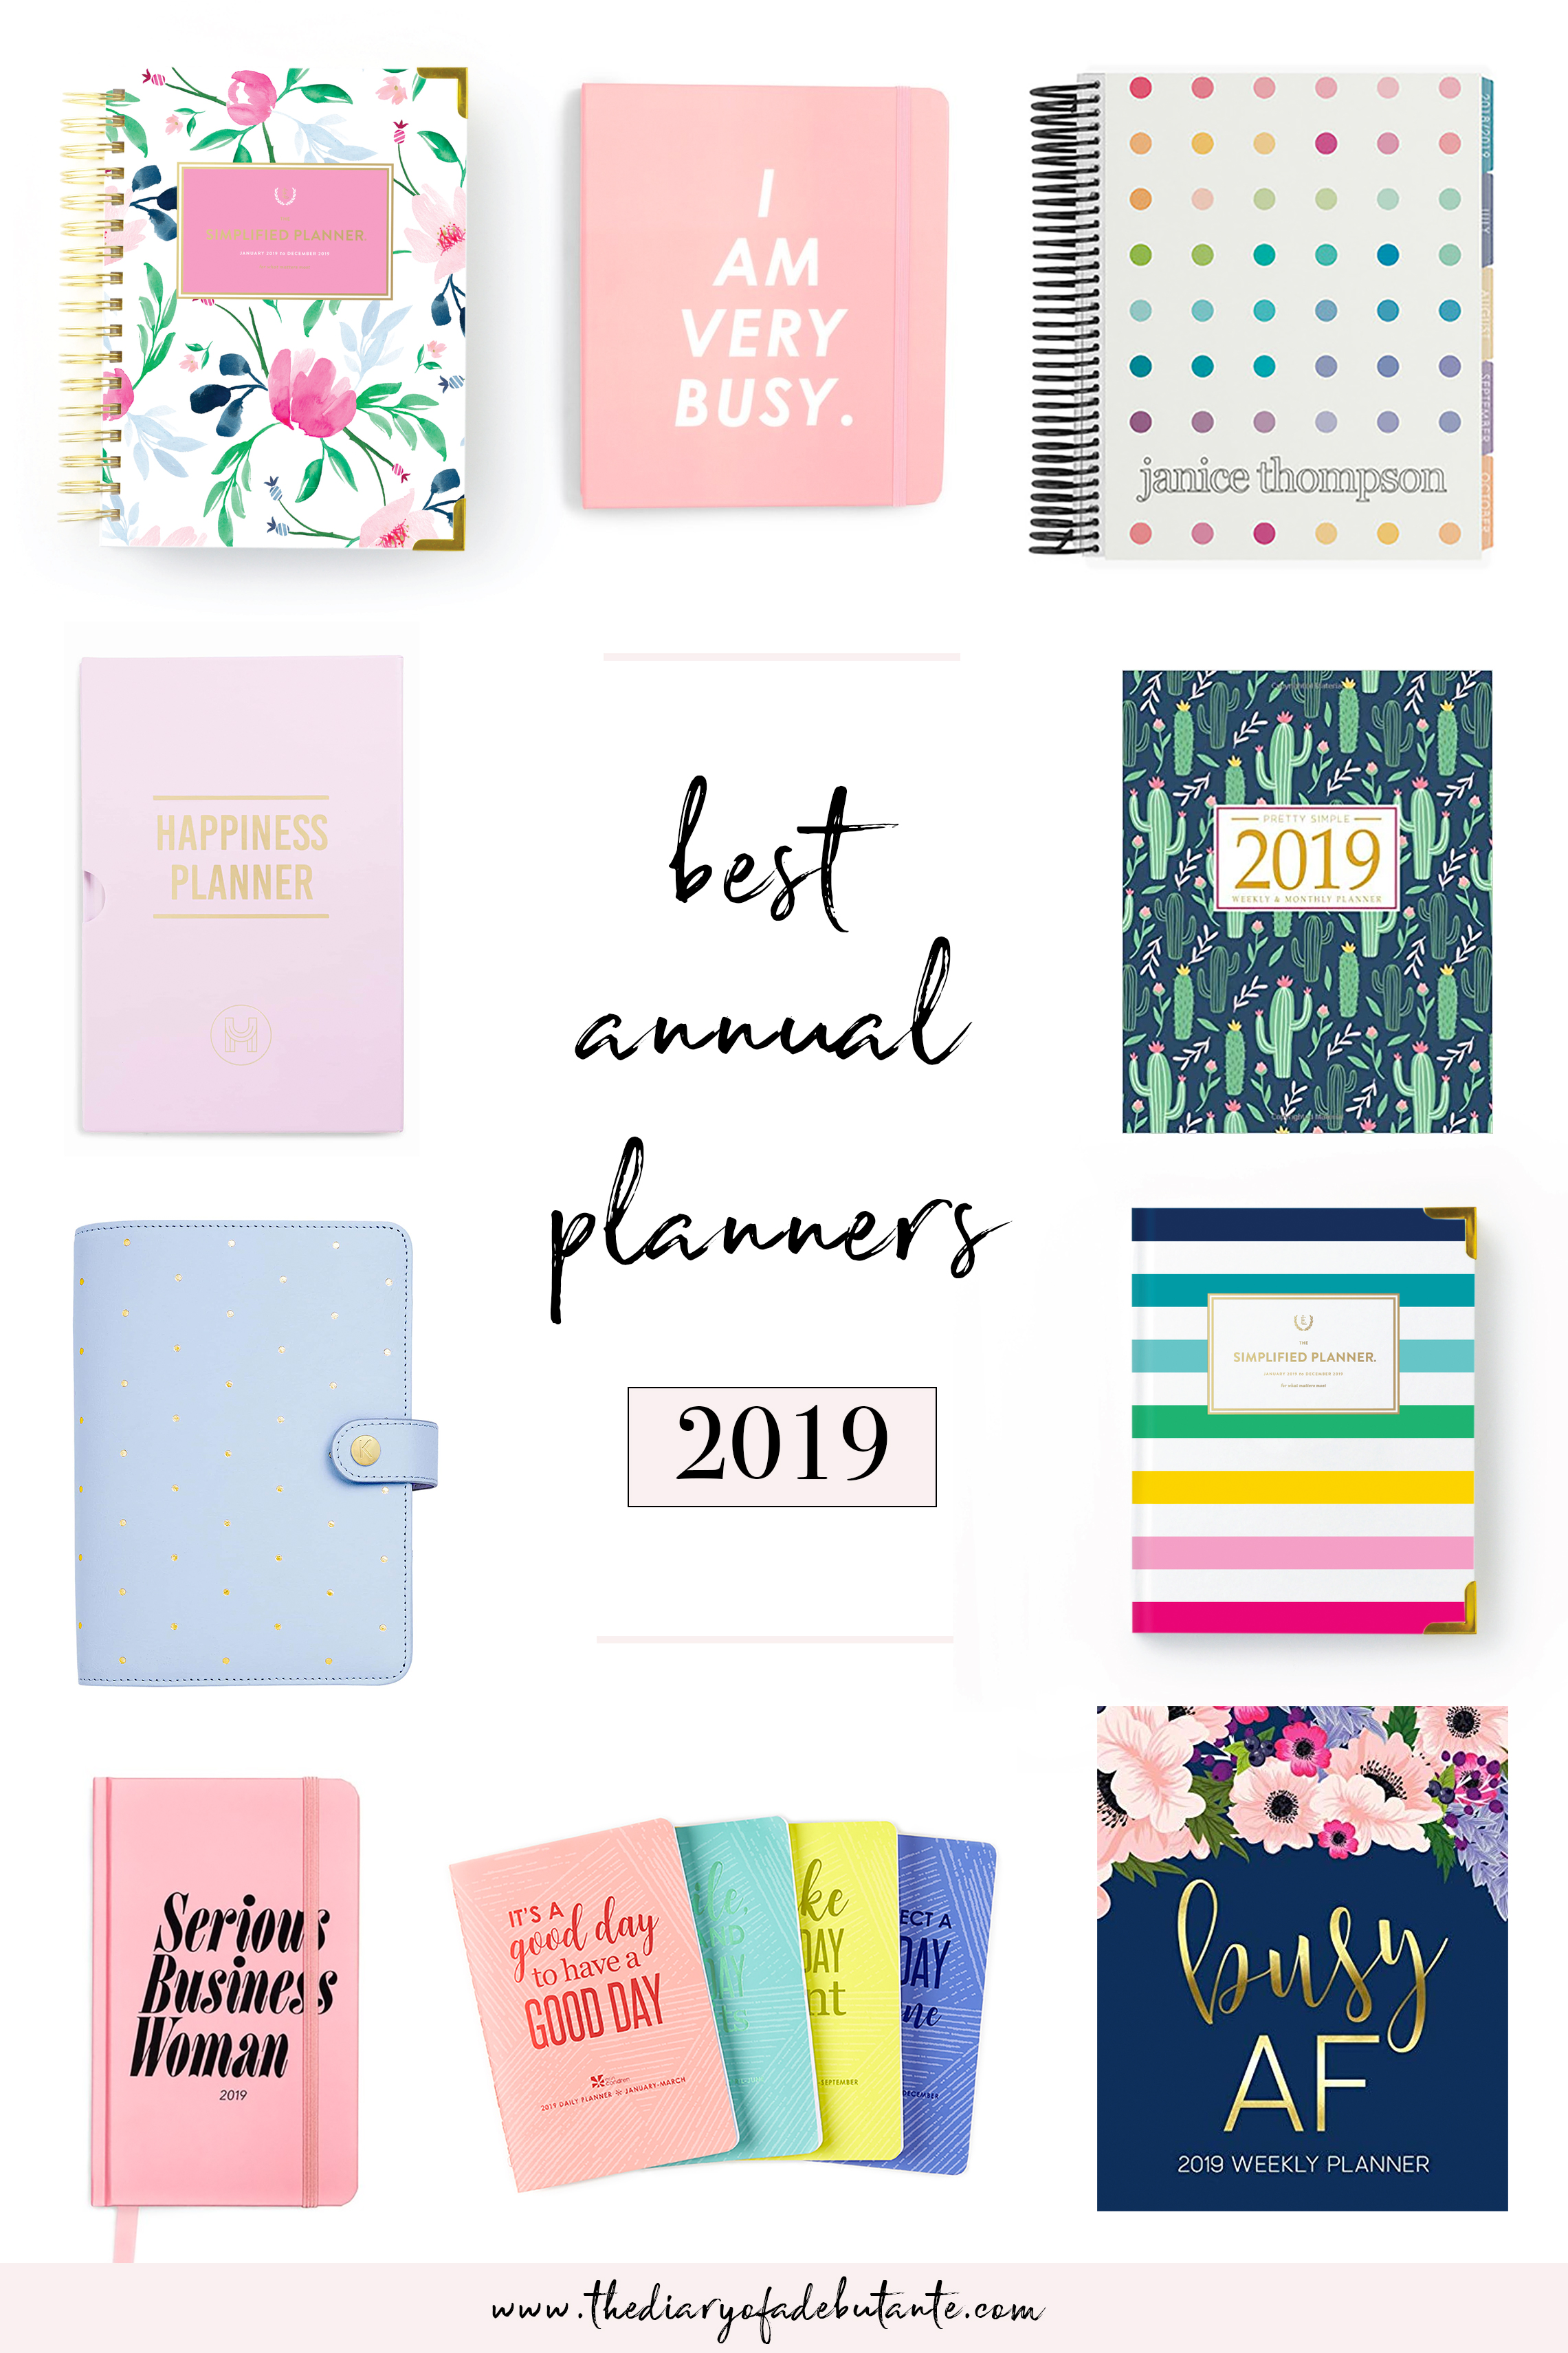 best planners for working women 2019, best planners for women 2019, best planners and organizers 2019,